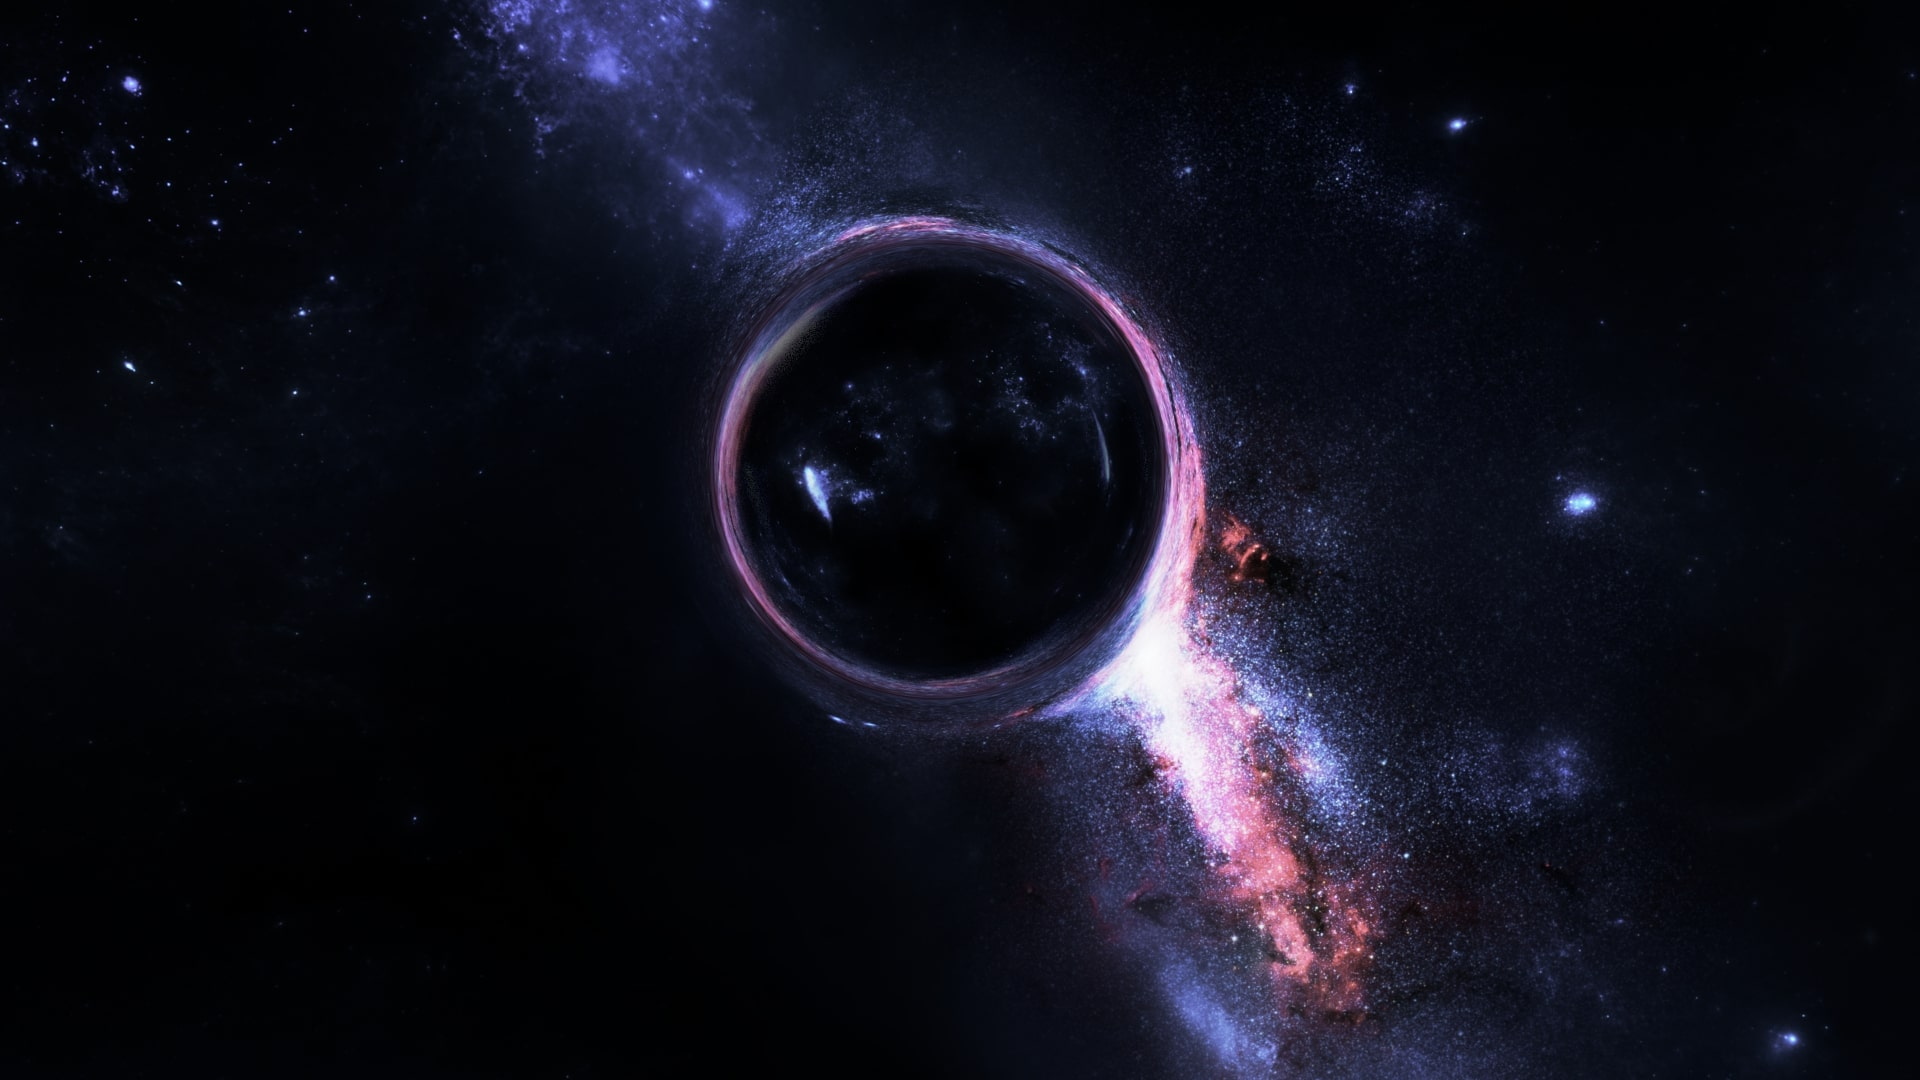 Wallpaper of black hole space galaxy background hd image - Black space wallpaper ...